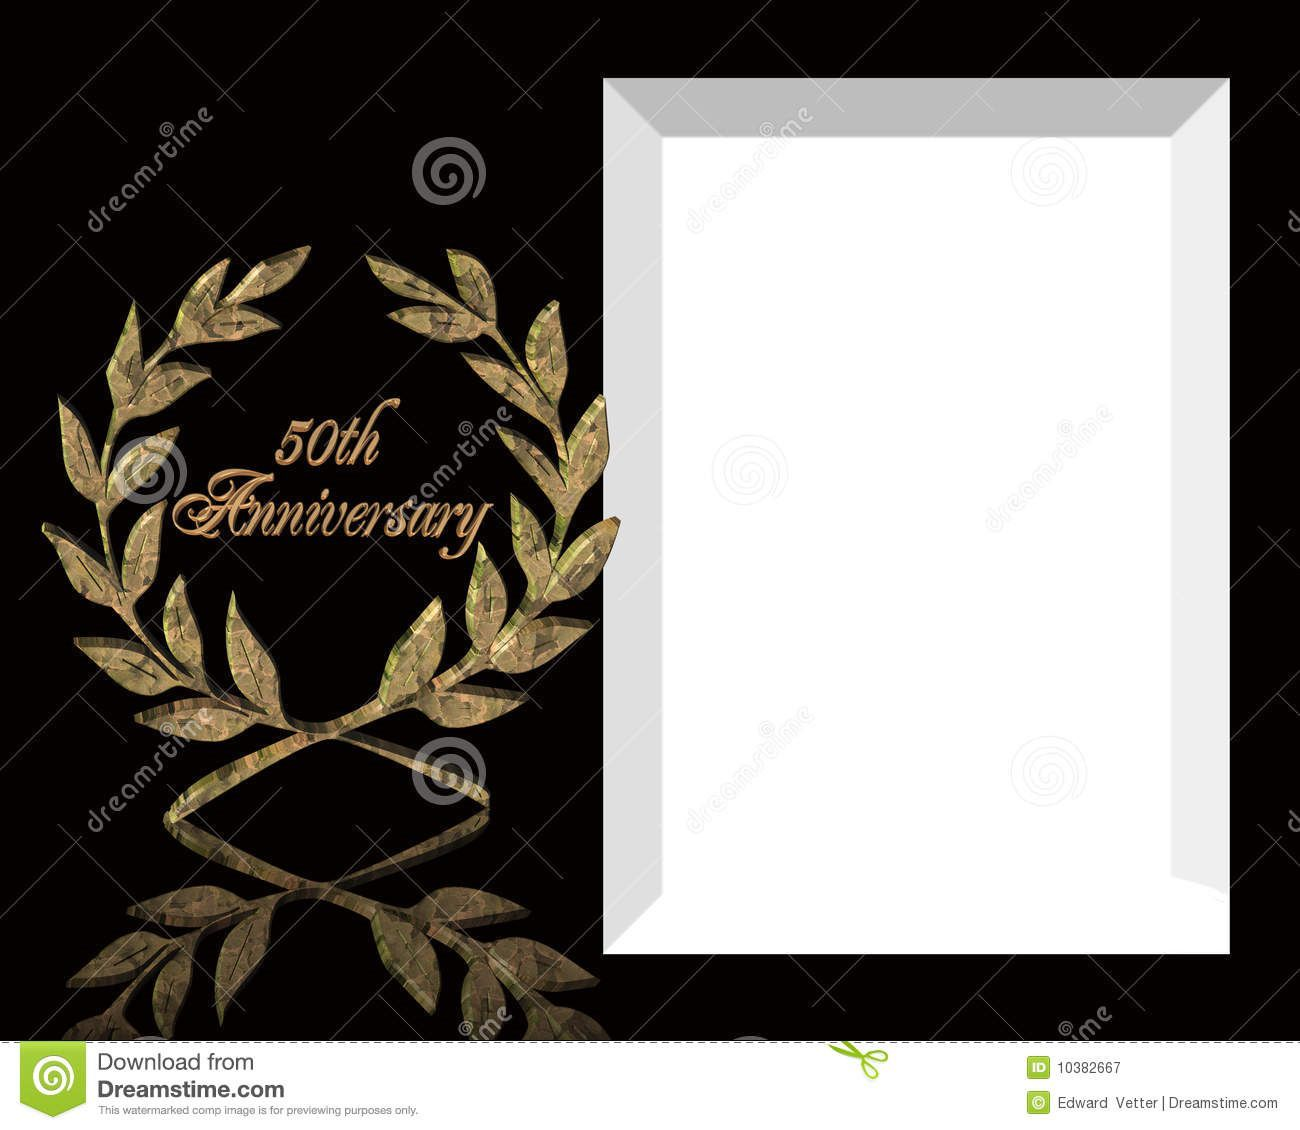 005 Exceptional 50th Anniversary Invitation Template Image  Wedding Microsoft Word Free DownloadFull